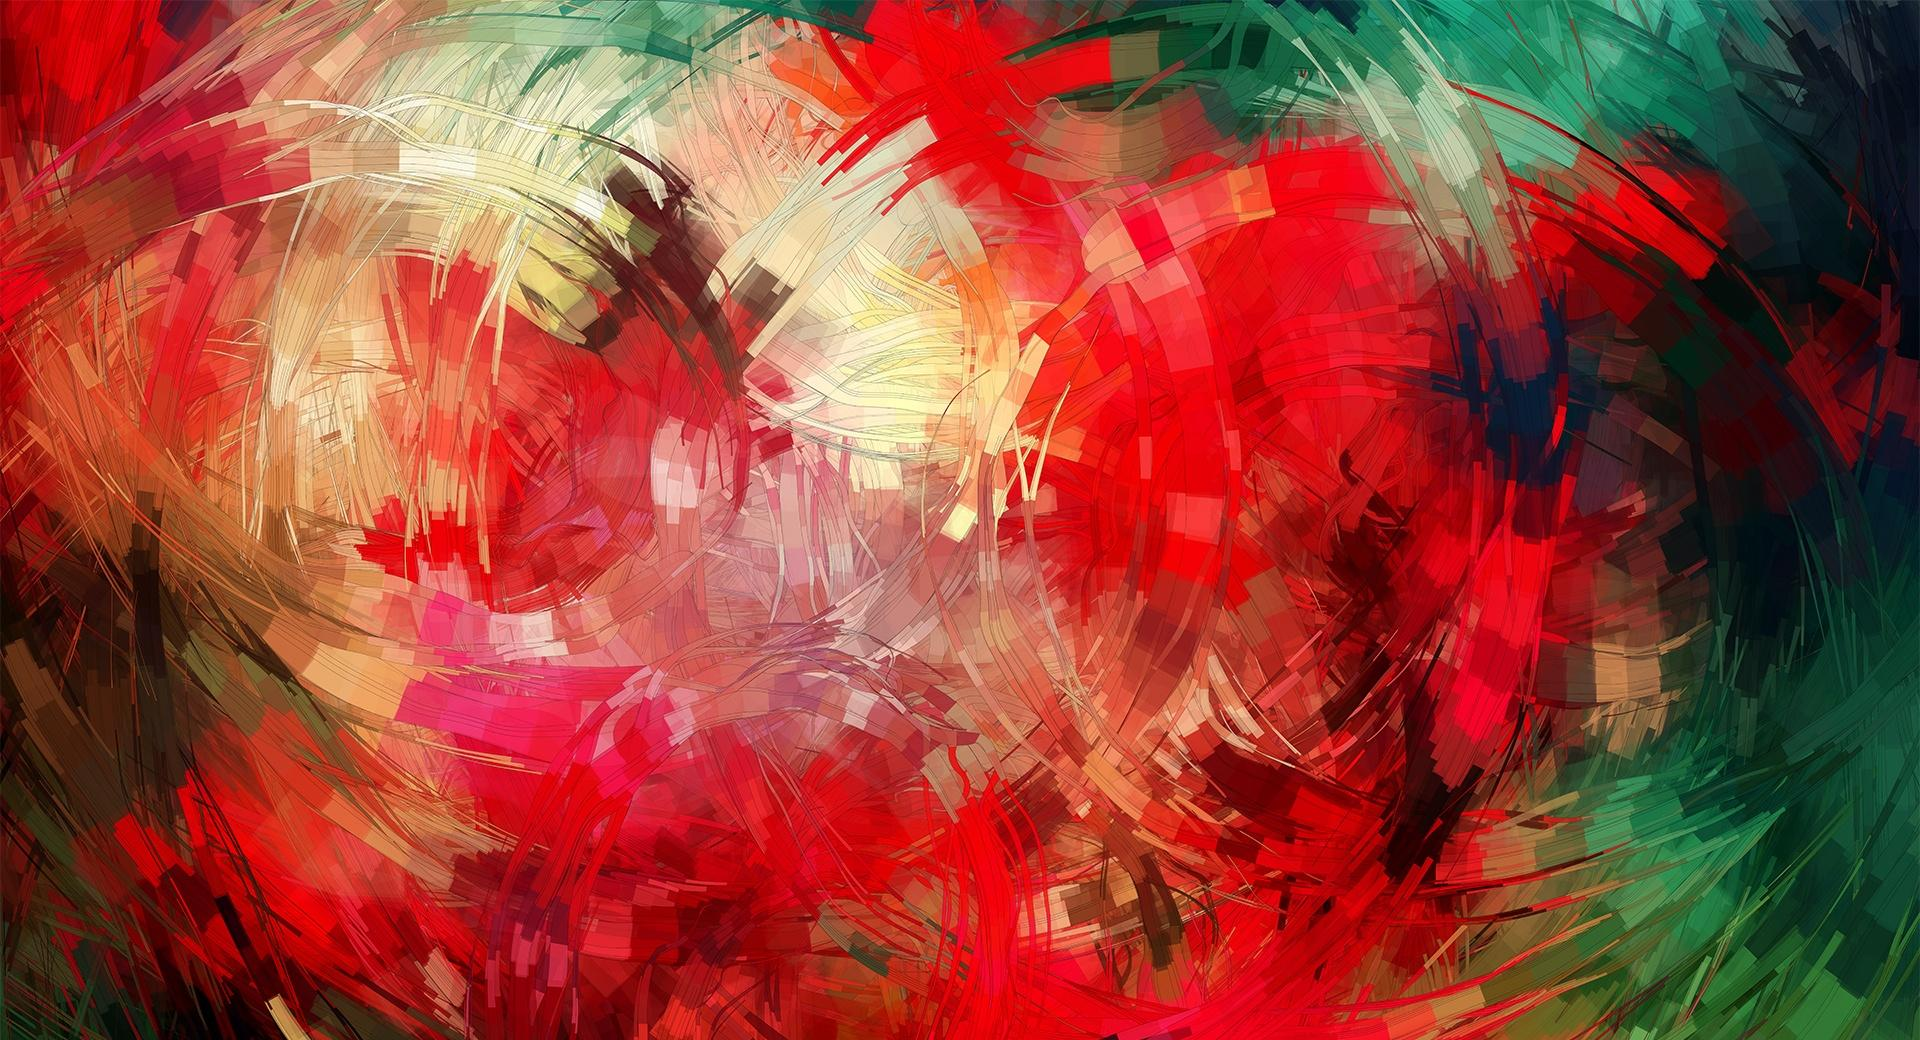 Abstract Swirl Design wallpapers HD quality